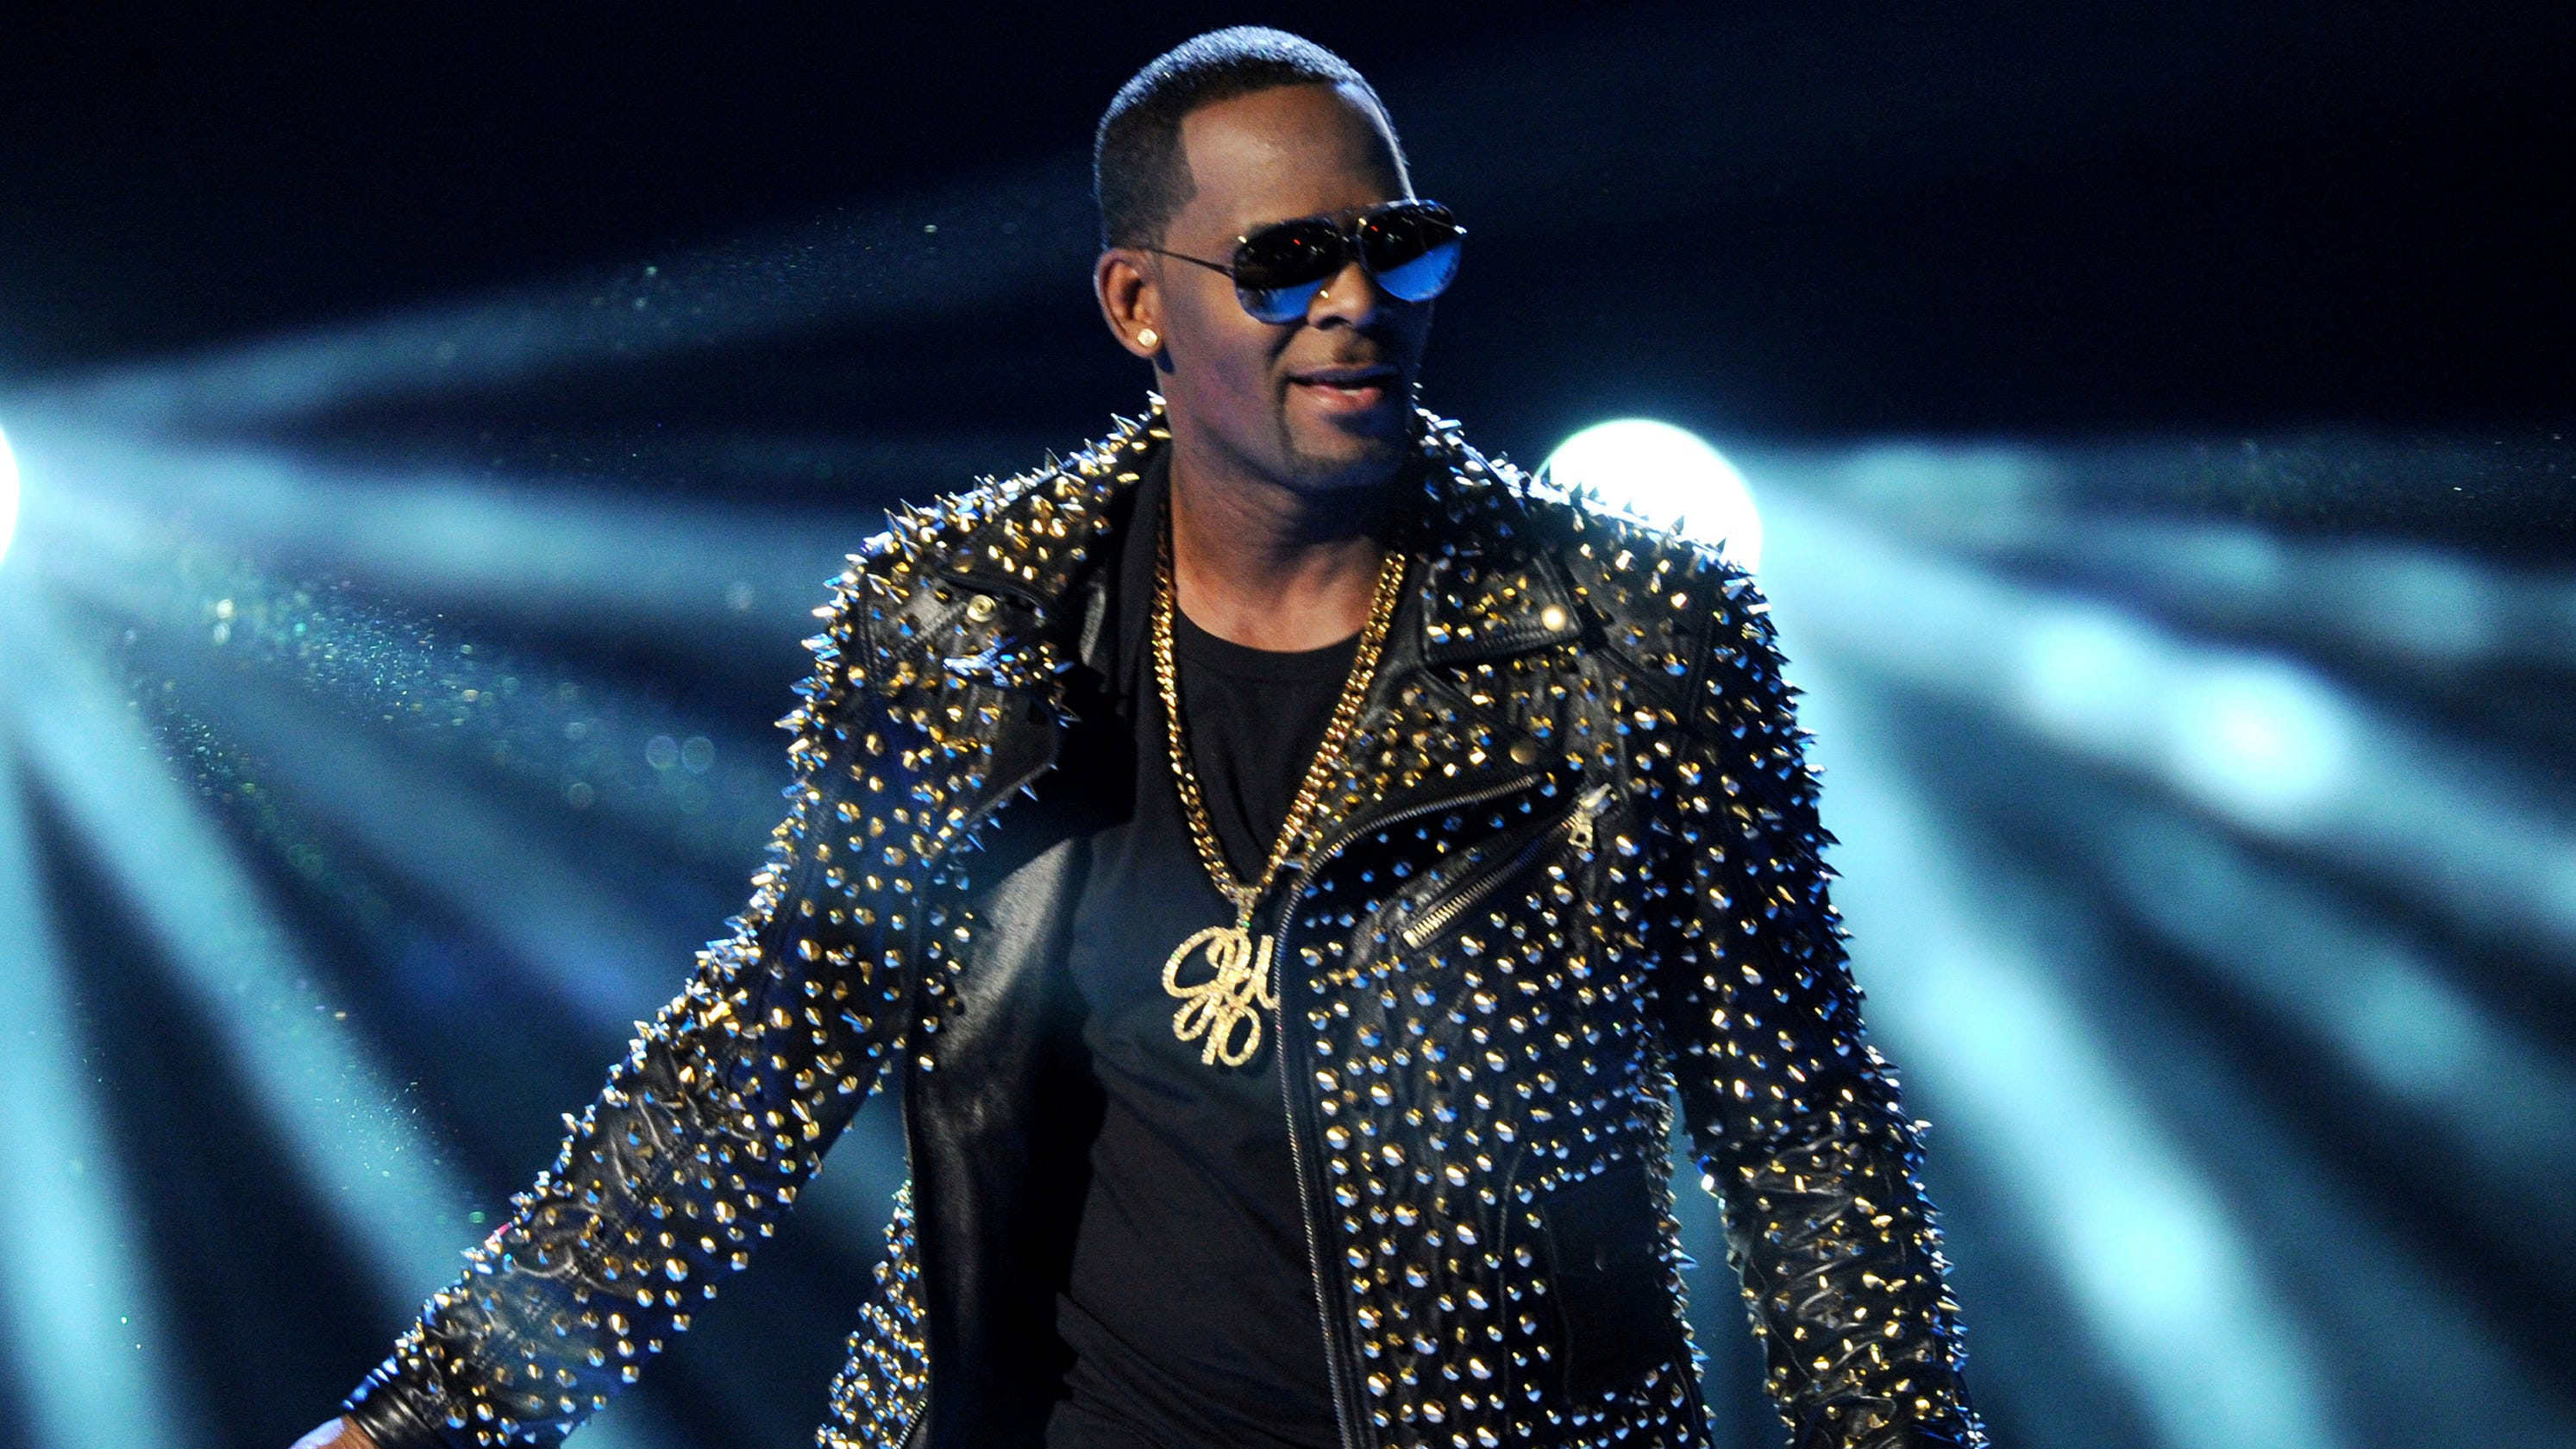 Pursuing R. Kelly: Could he end up convicted of sex crimes like Bill Cosby?